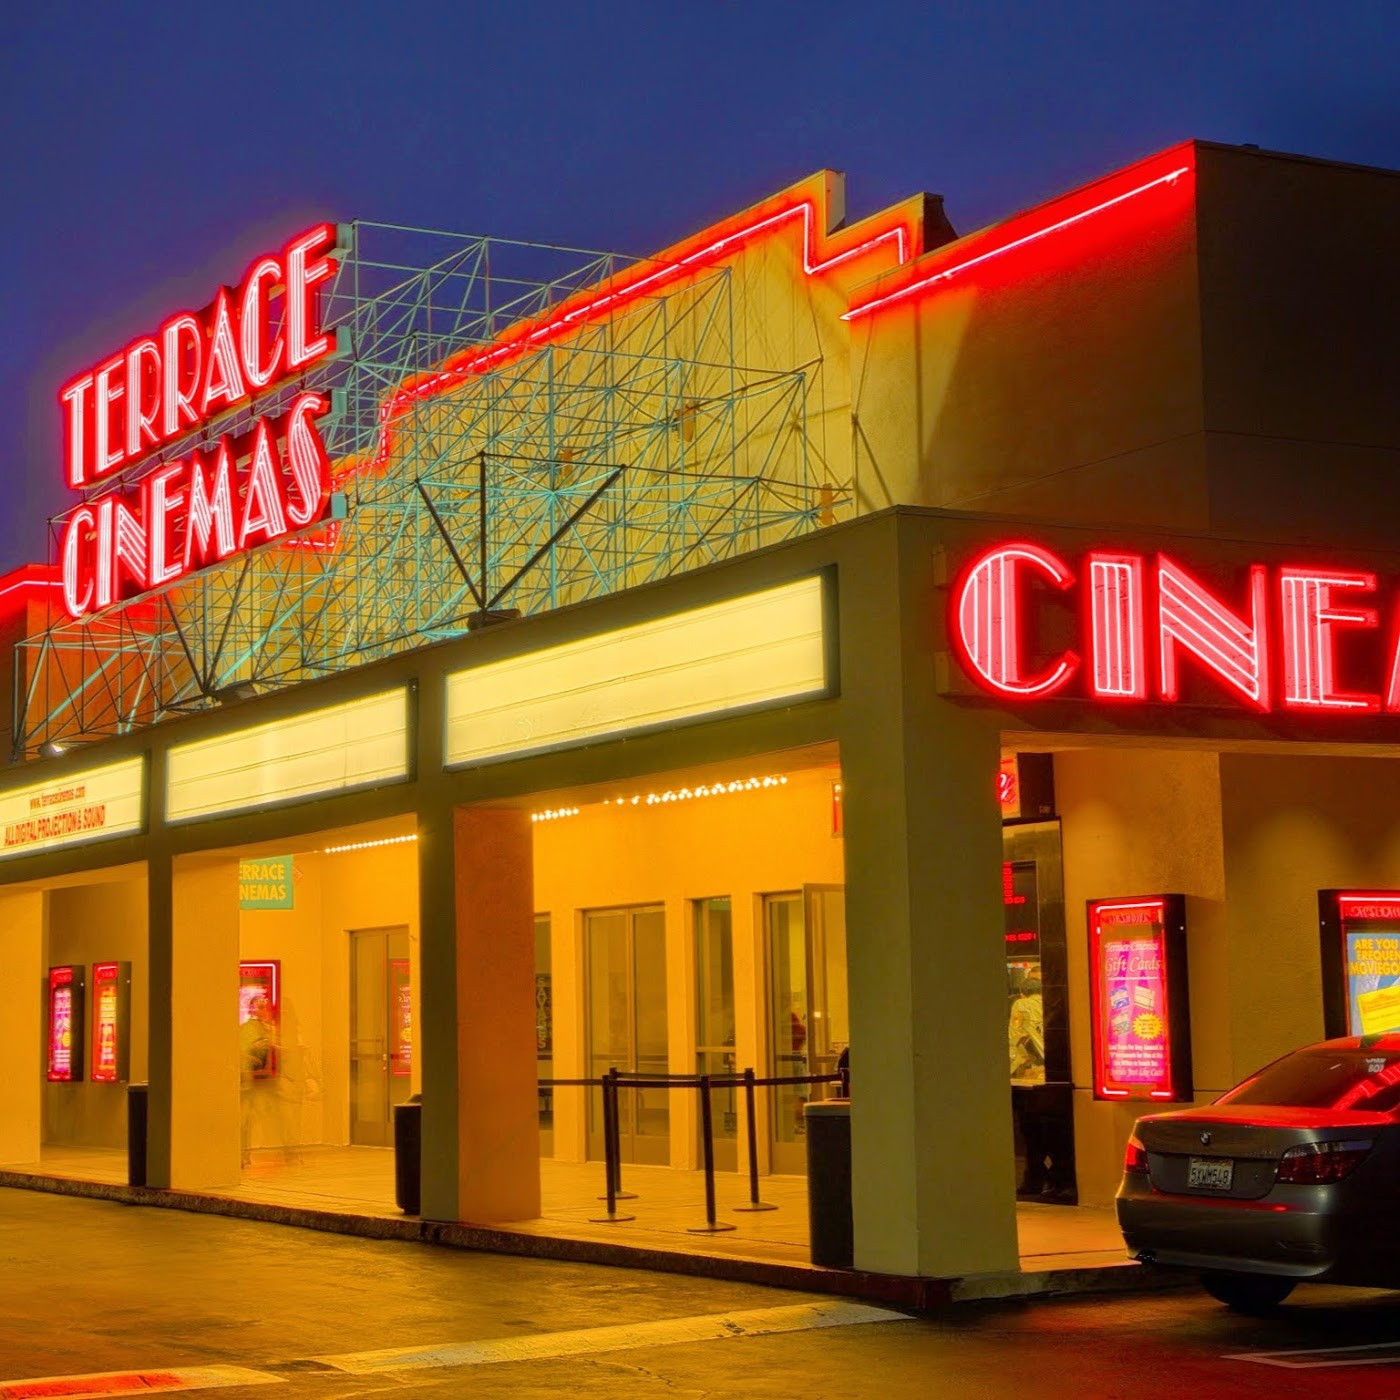 Best ideas about Starlight Terrace Cinemas . Save or Pin Where Is Los Angeles Movie Theater panies Where Is Los Now.